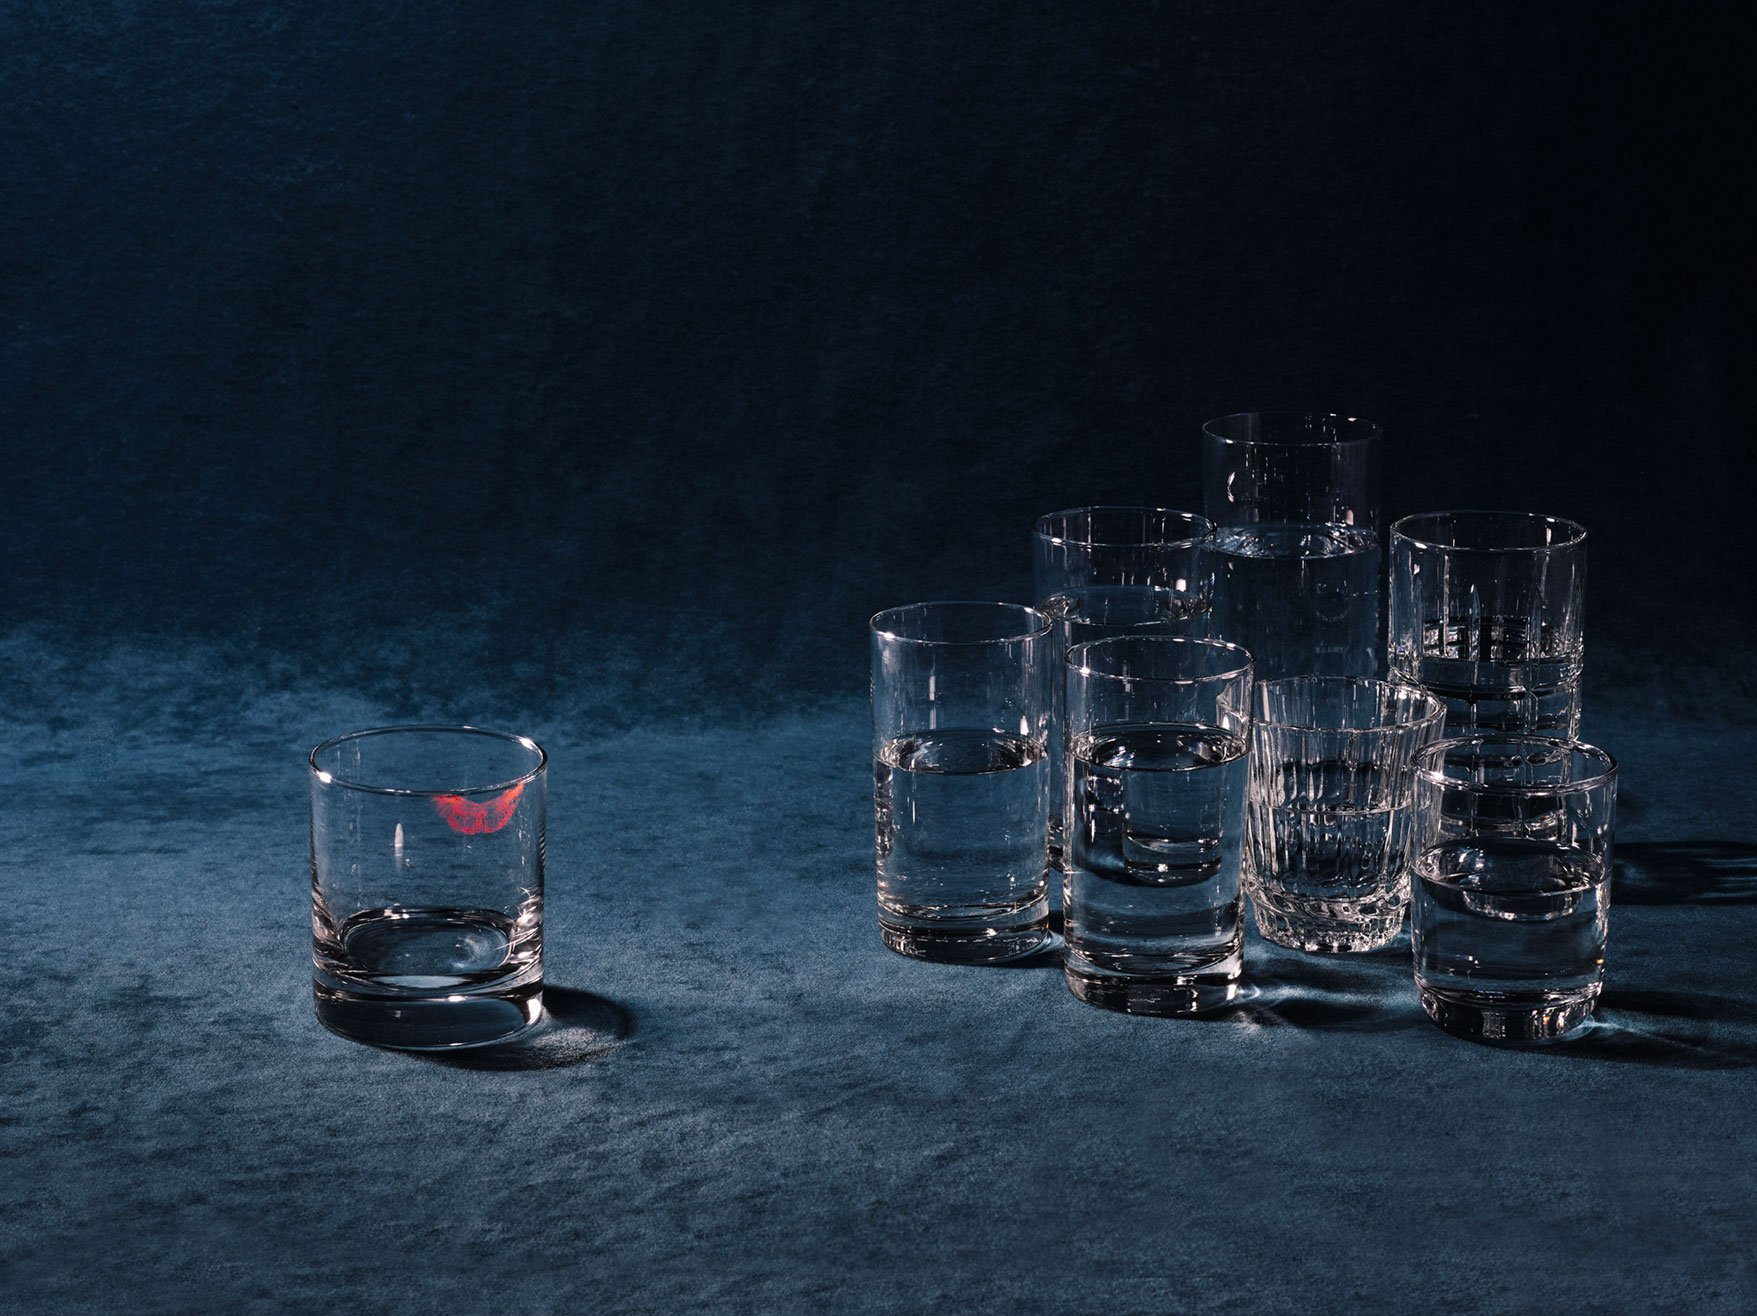 Still life image of various clear cups with one removed from the group and stained with a lipstick kiss for Romance Journal Issue 02 Resistance. Publication design, art direction, print design by RoAndCo.